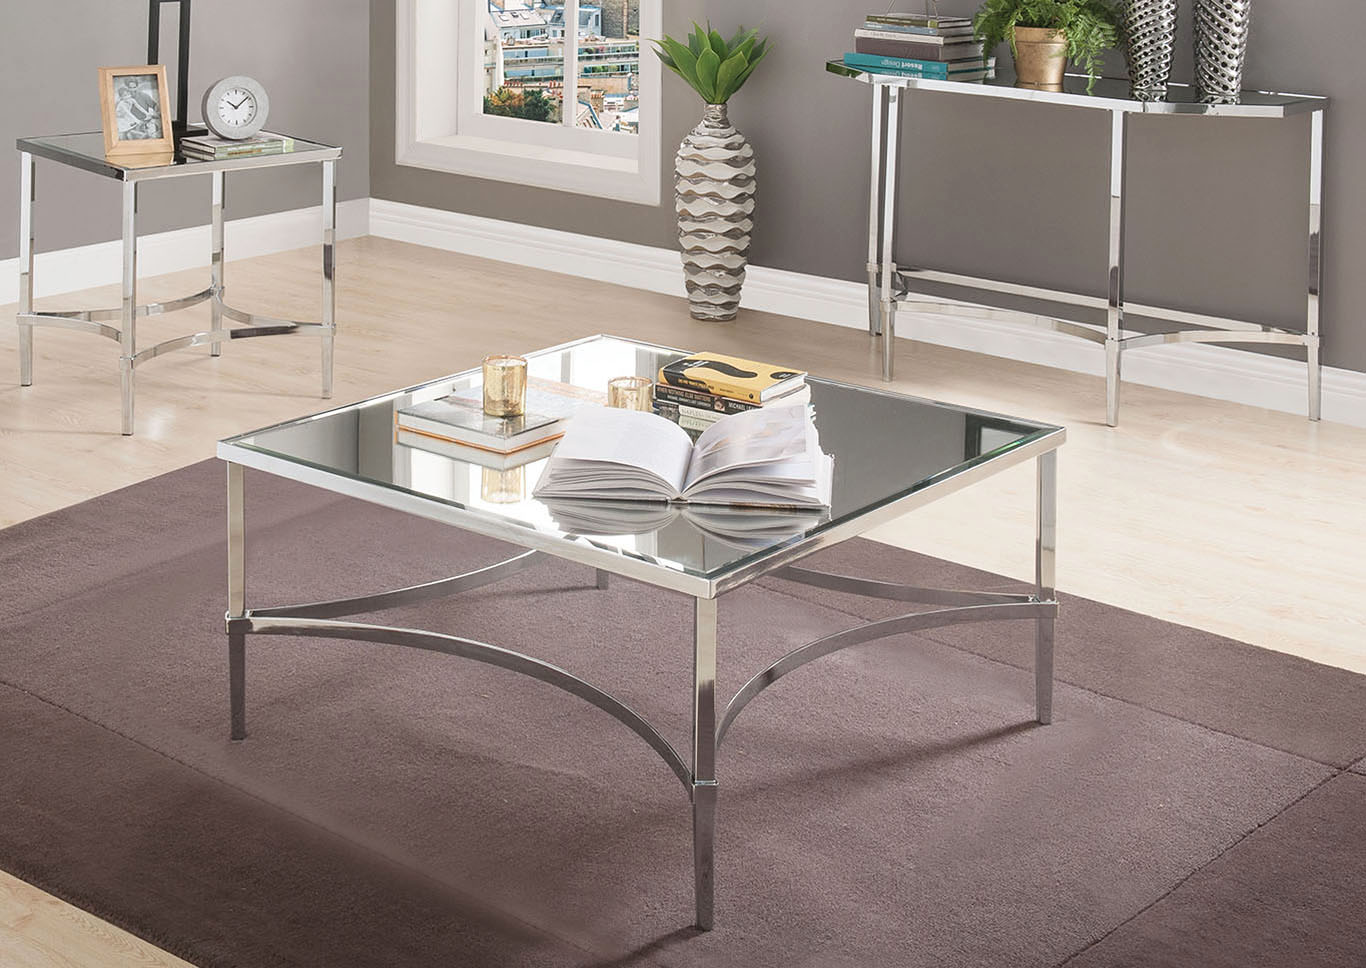 Petunia Chrome/Mirrored Coffee Table,Acme